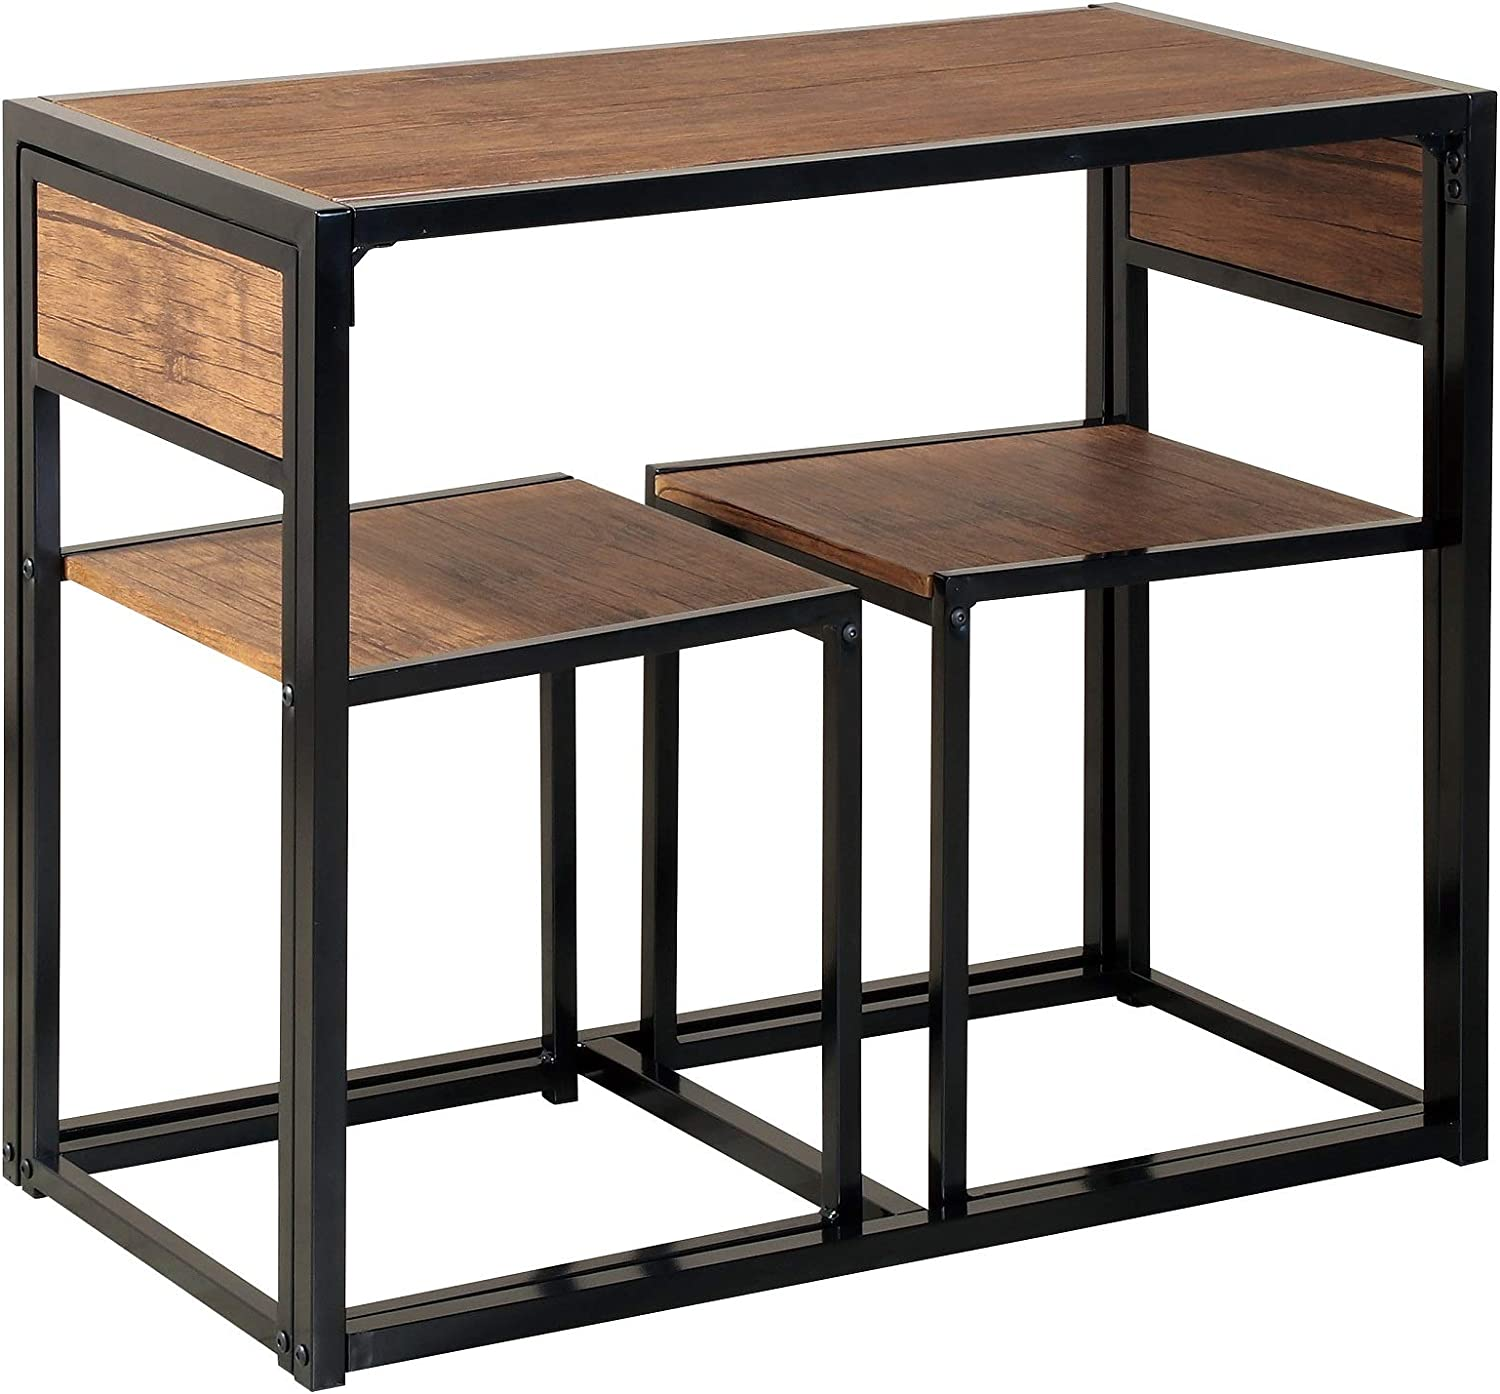 3-Piece Table and Chair Set - Small Space Compact Dining Bar Table Set for Kitchen Living Room Dinette Coffee Dining Industrial Design Breakfast Table (Brown)